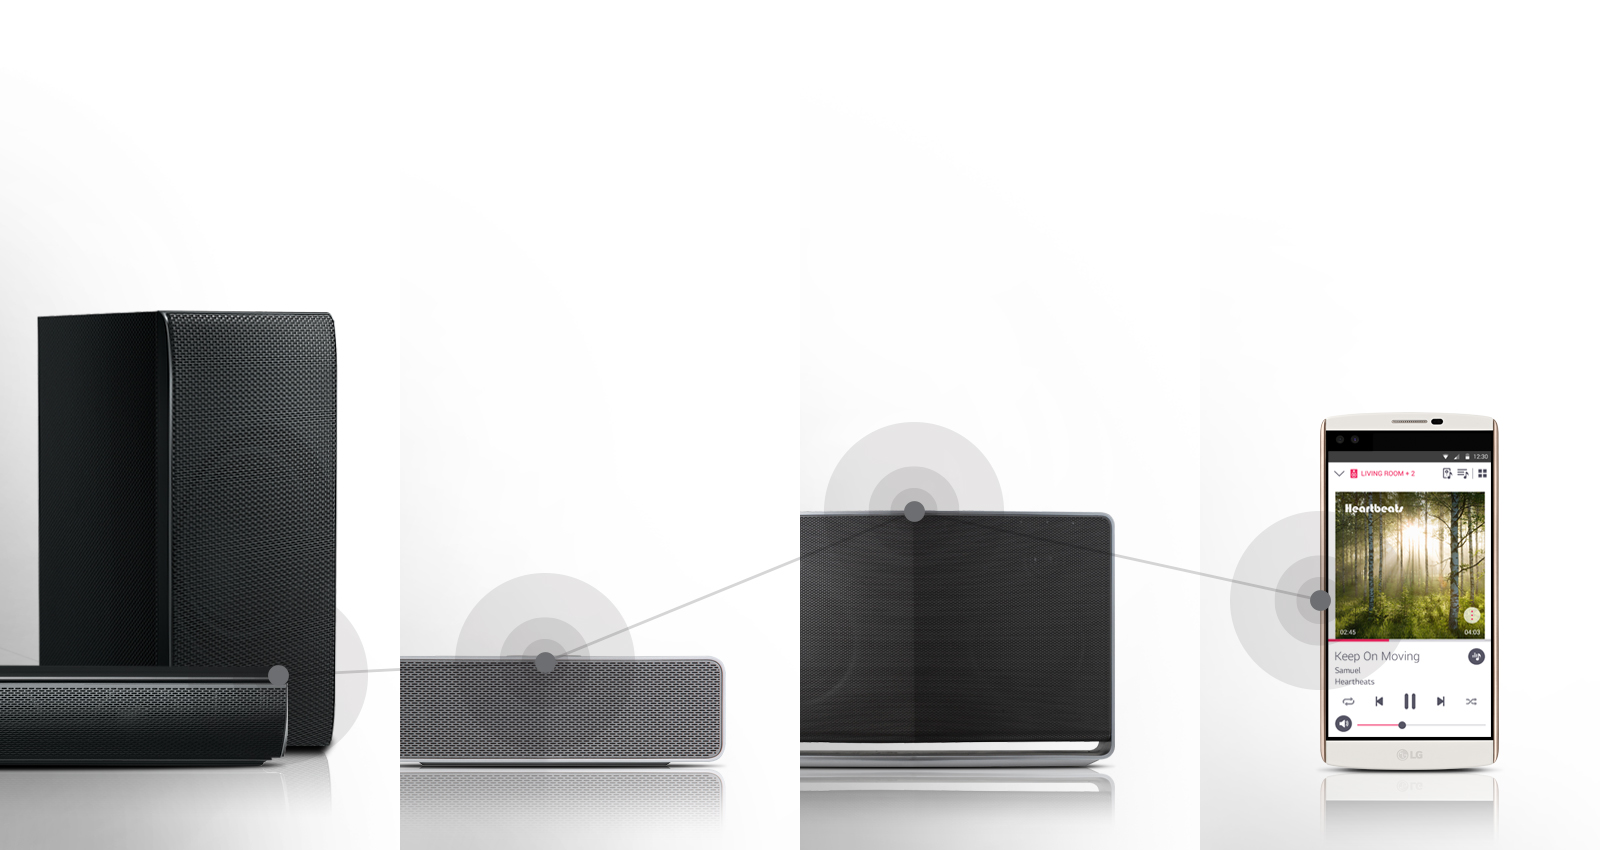 how to connect speakers to lg lf54